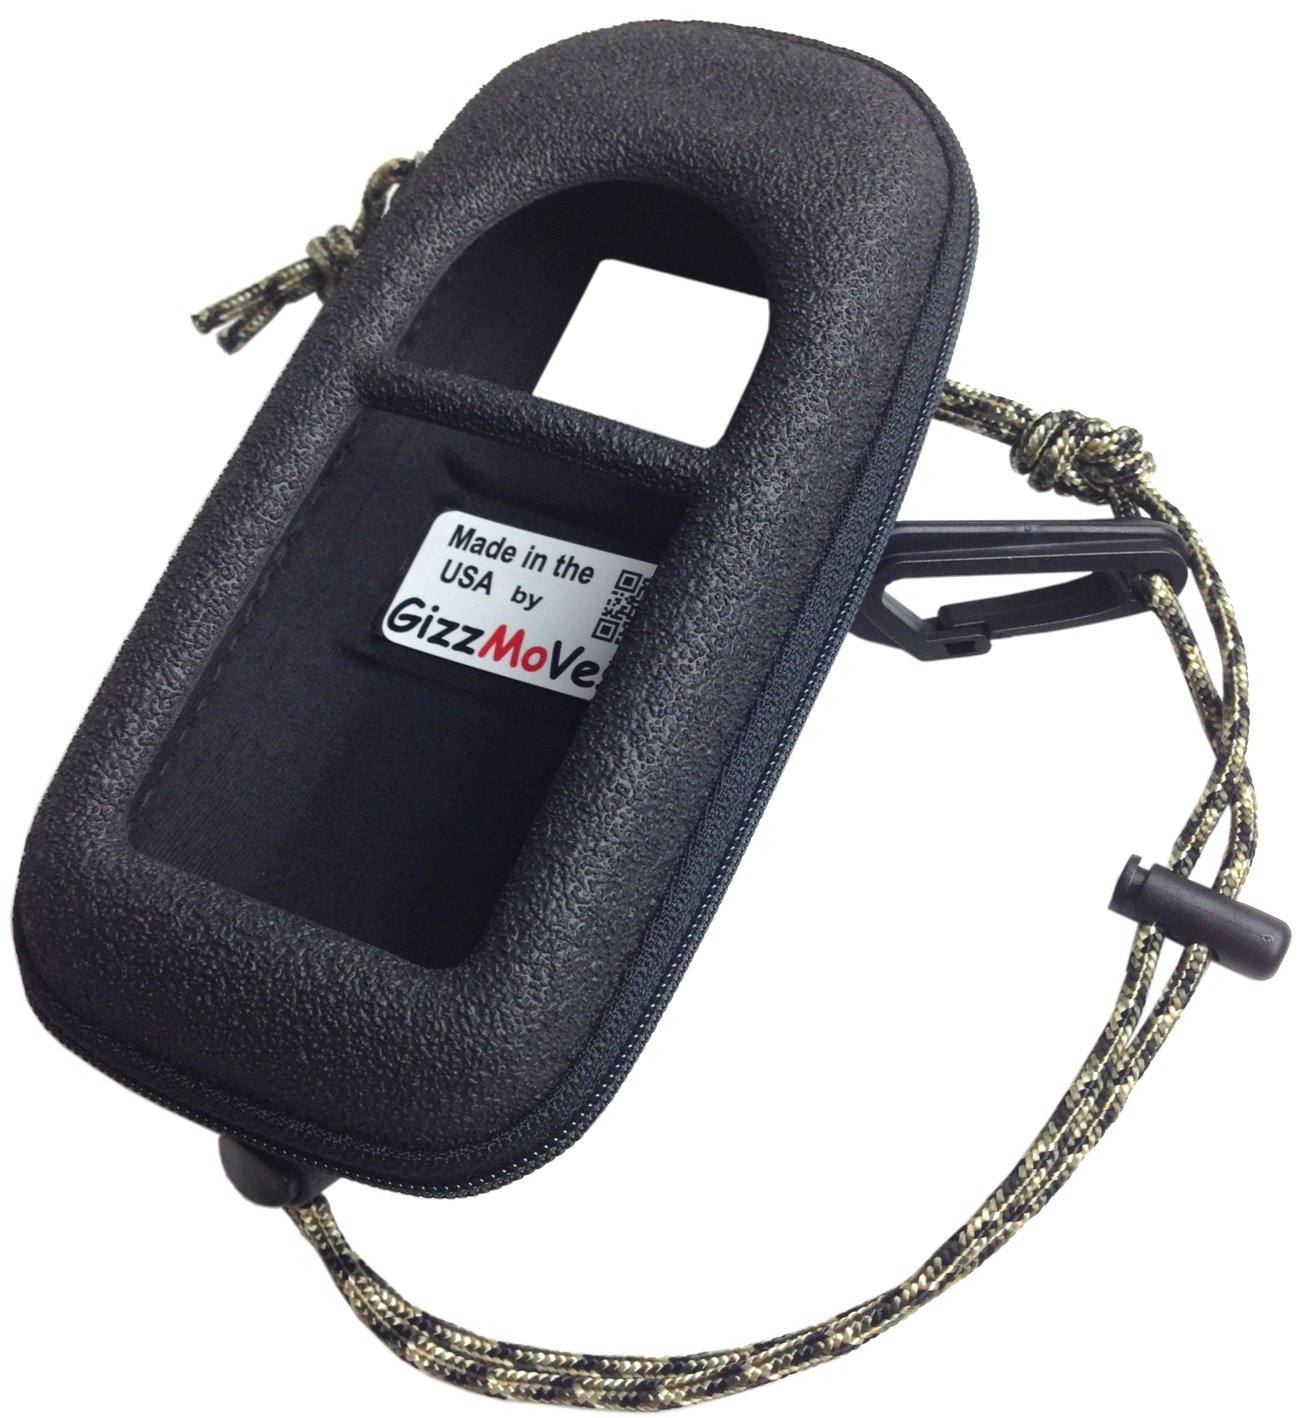 GARMIN 78 78sc 78 s Heavy-Duty Case Cover Skin in tactical *Special Ops Black* w/ Webbing Loop, Lanyard w/Clip. Only For Garmin GPSMap 78sc, 78s & 78. Search 'GizzMoVest' for all models. MADE IN THE USA. by GizzMoVest LLC